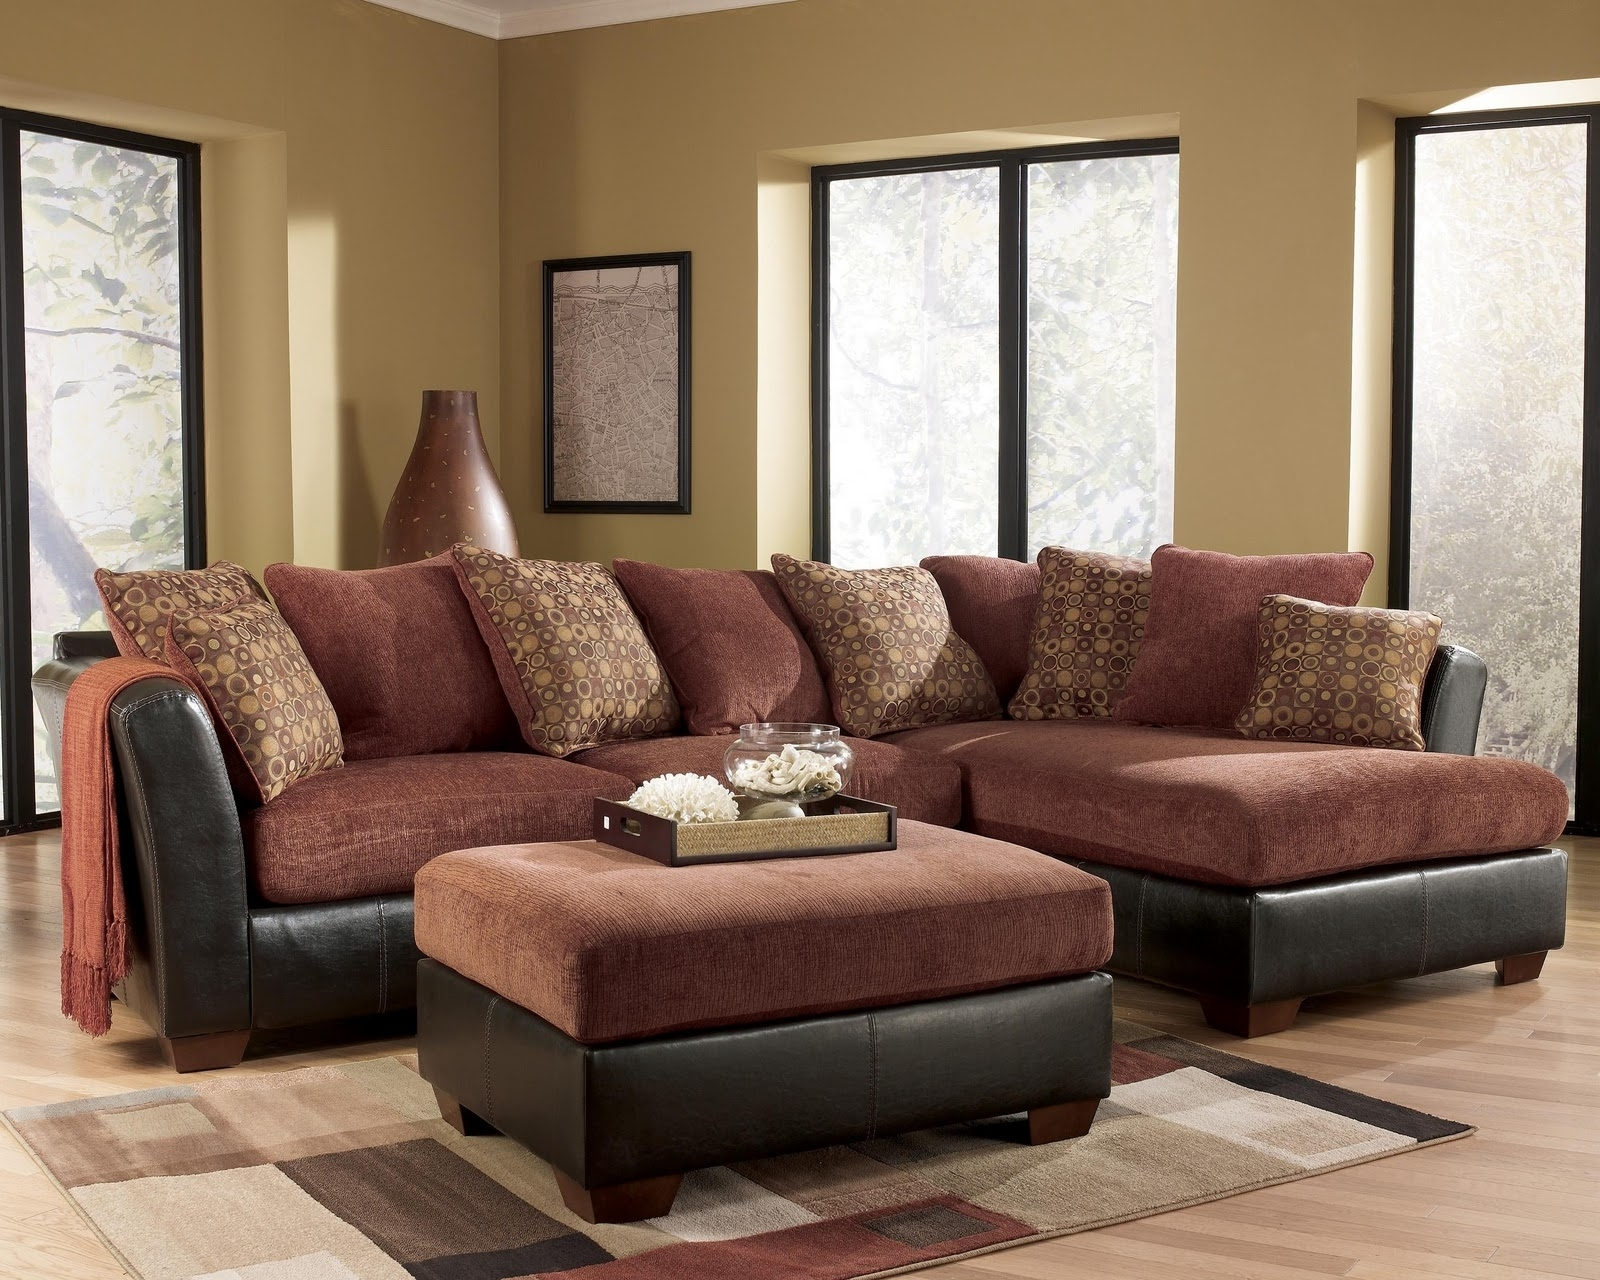 Well Liked Royal Furniture Sectional Sofas For Ashley Furniture – Larson 31400 Cinnamon Sofa Sectional – Royal (View 20 of 20)